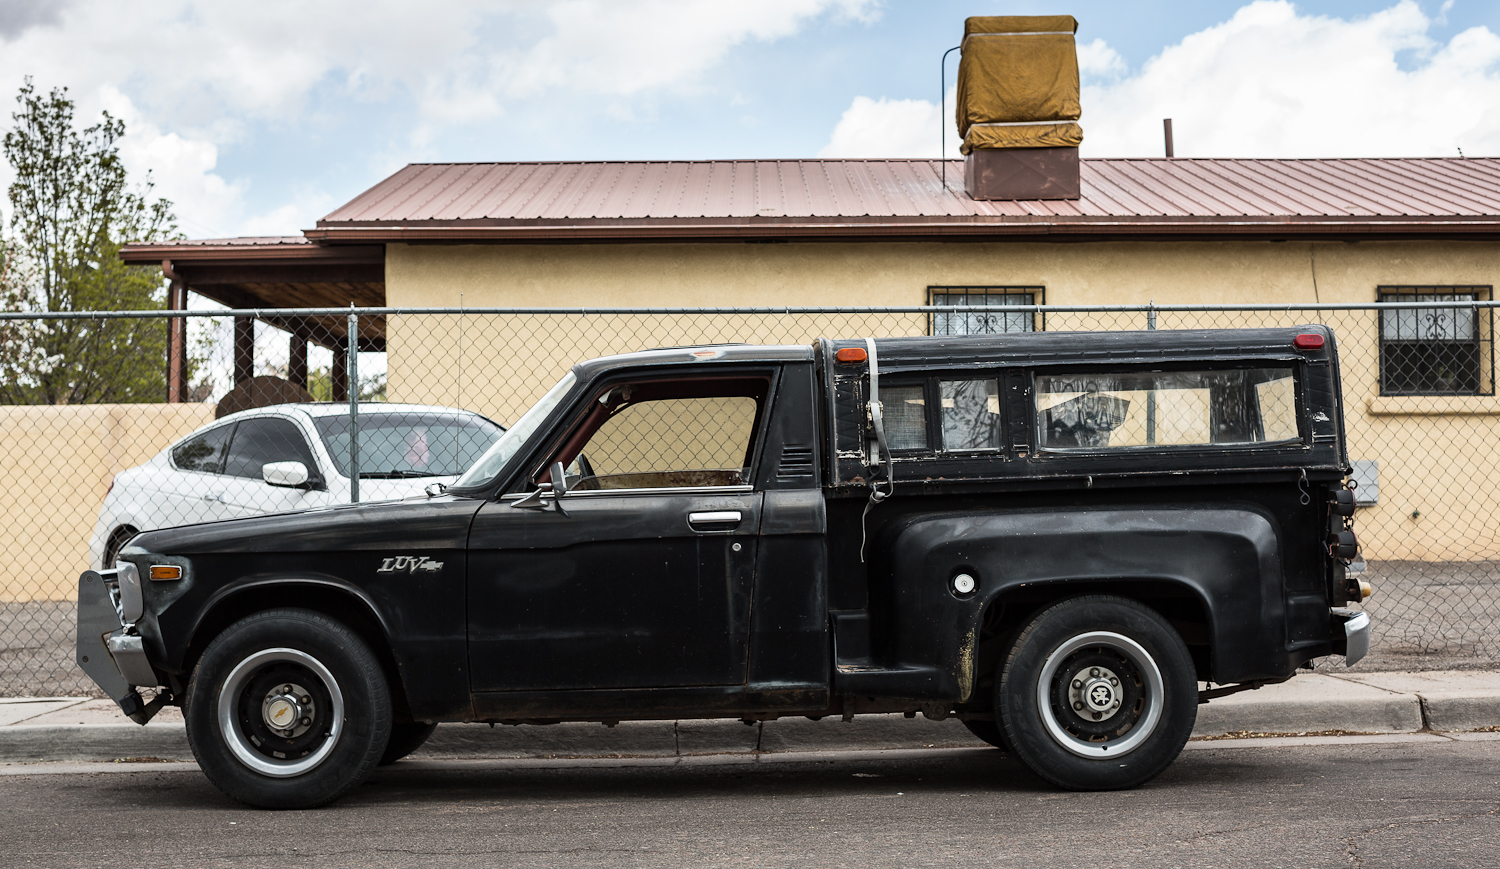 1975 Chevy Luv Truck For Sale | Autos Post